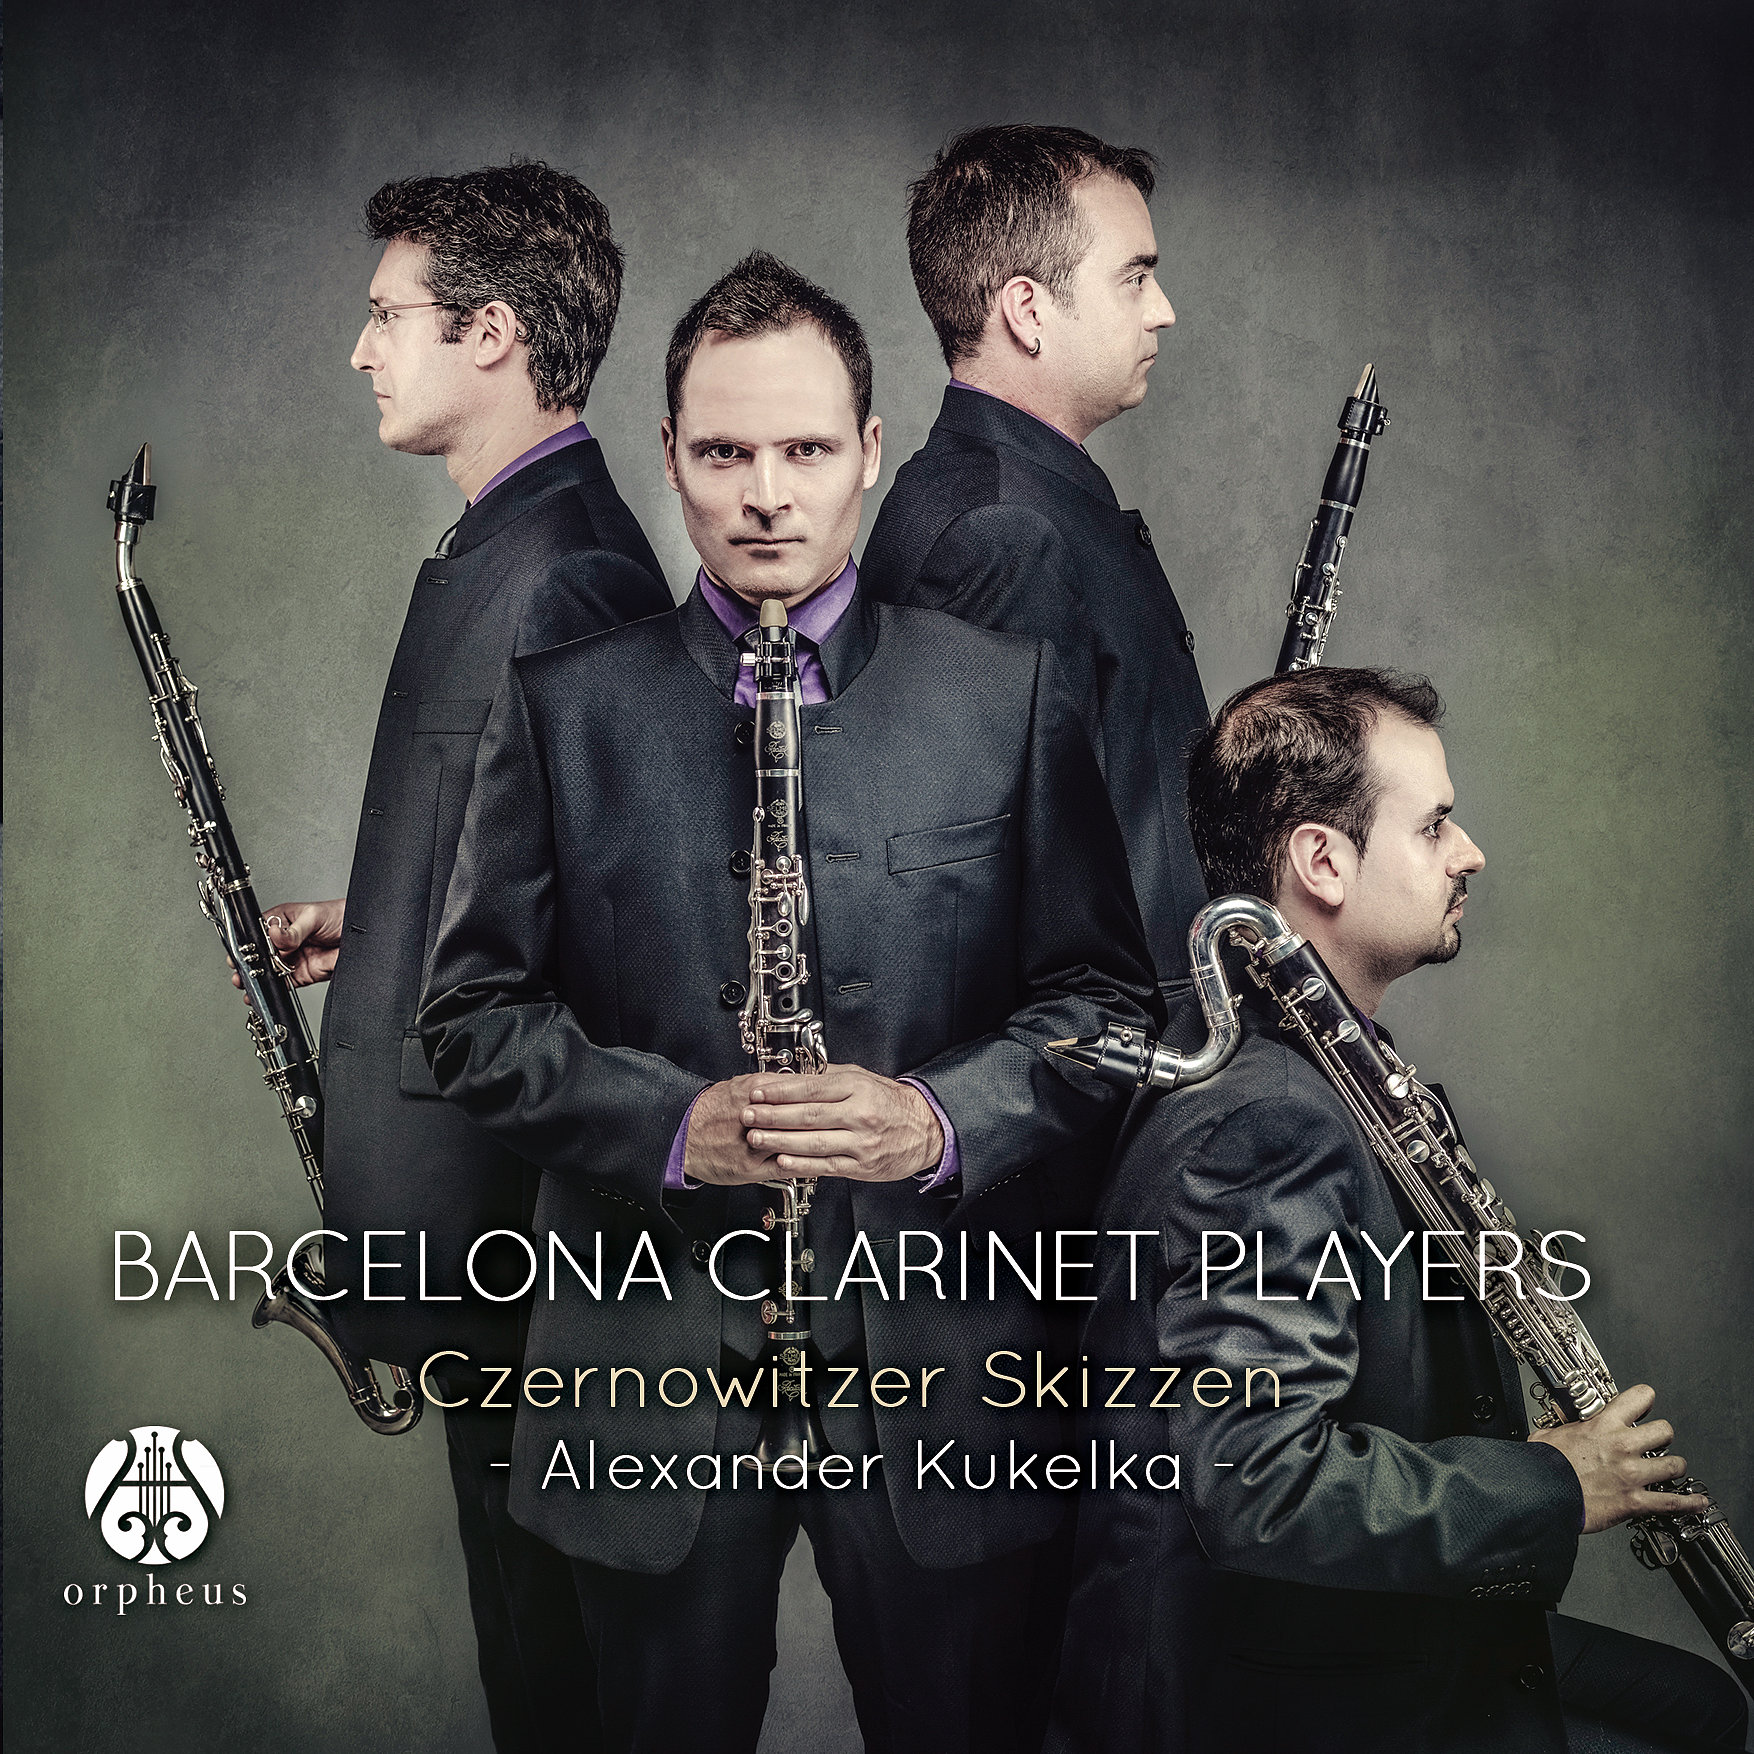 Barcelona Clarinet Players